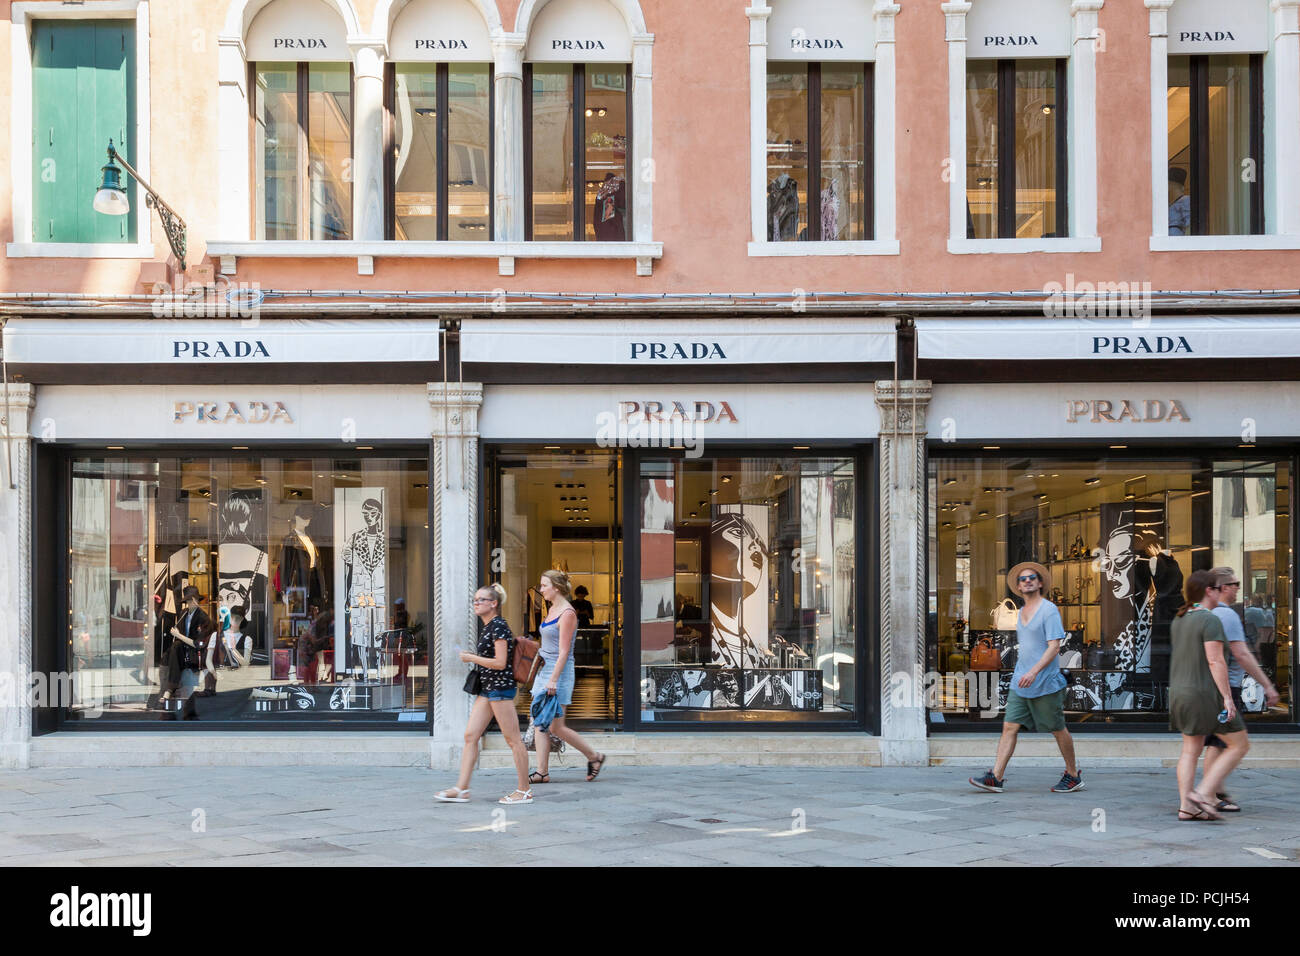 fc1d7a1190cd8 Retail Outlet Storefront Photos   Retail Outlet Storefront Images ...